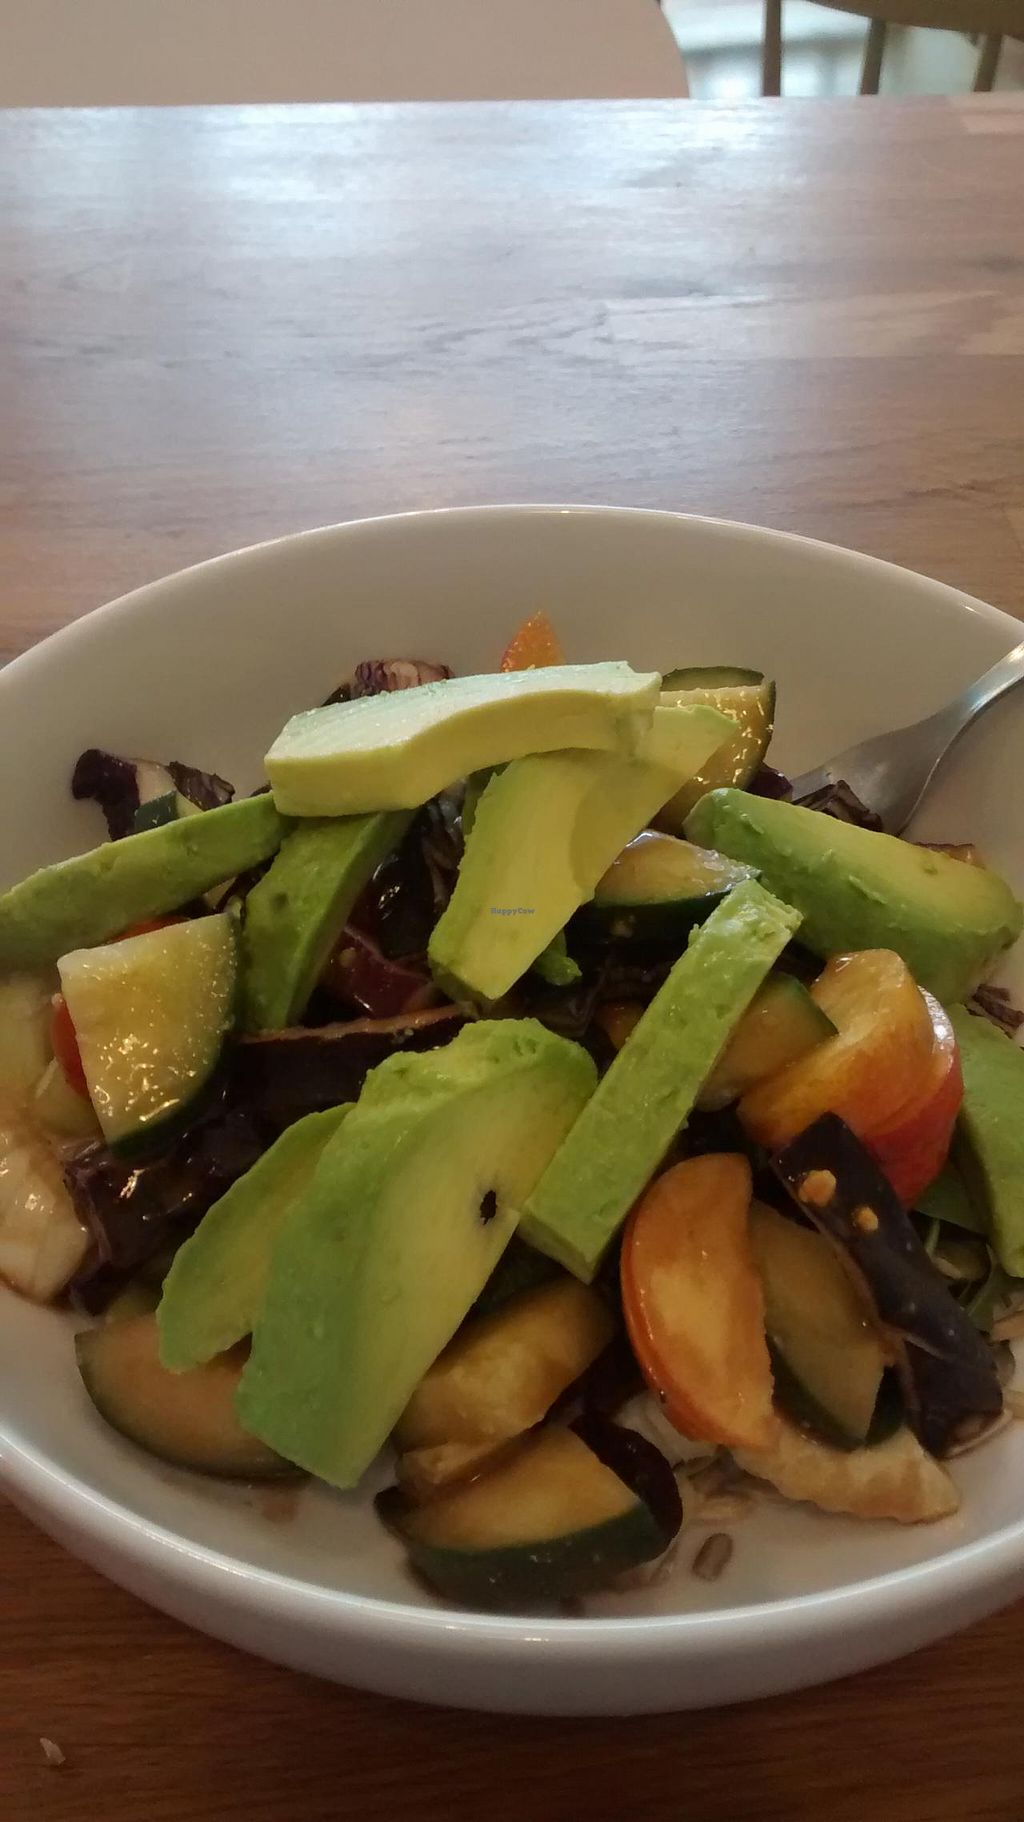 """Photo of CLOSED: Meadowlark No. 39  by <a href=""""/members/profile/craigmc"""">craigmc</a> <br/>Great salad topped with avocado <br/> March 20, 2015  - <a href='/contact/abuse/image/46150/96294'>Report</a>"""